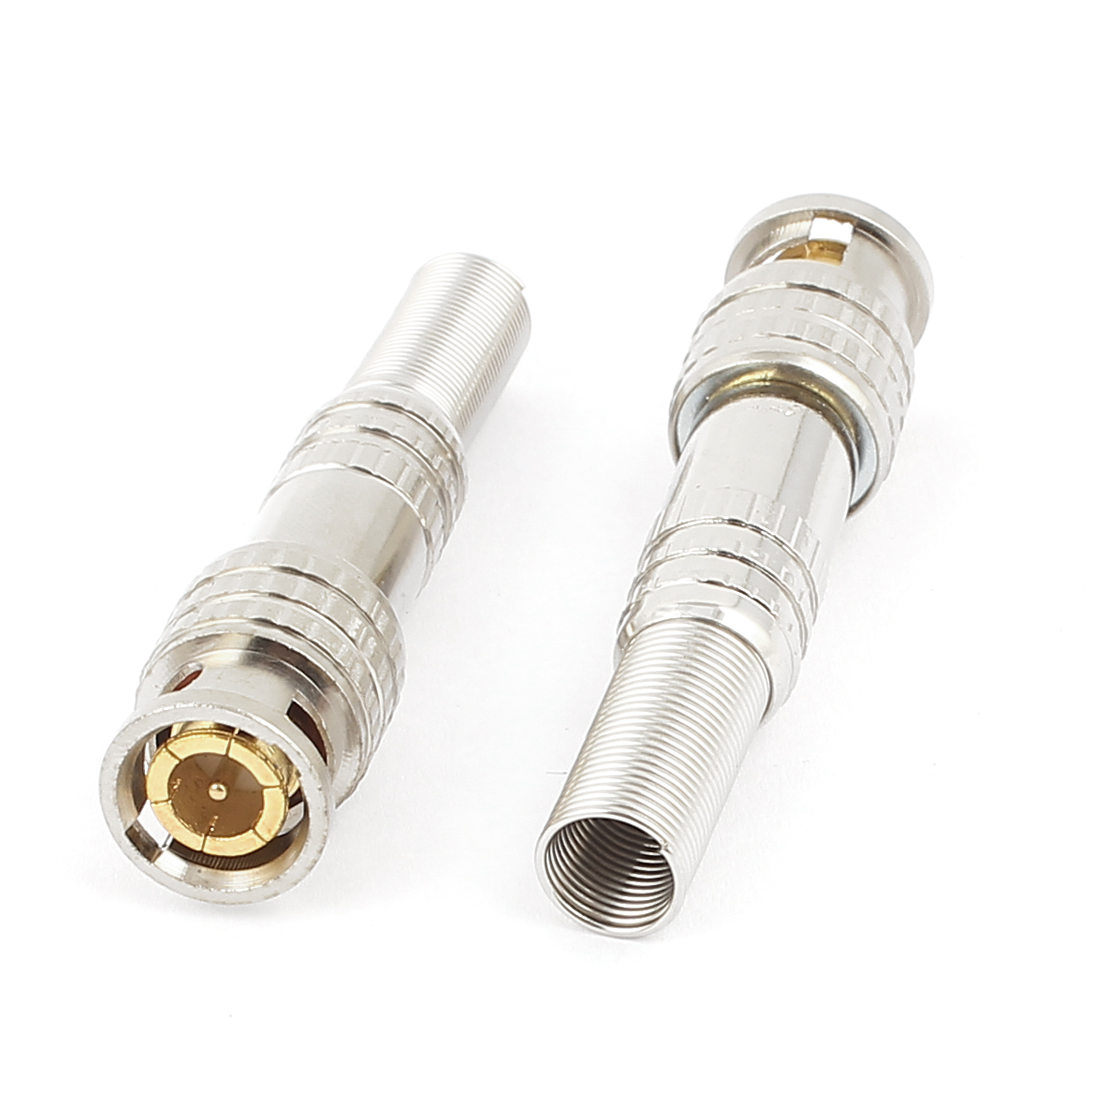 2pcs Spring Guard Video RF BNC Male Jack Plug Connector Adapter for Coaxial Cable Wire